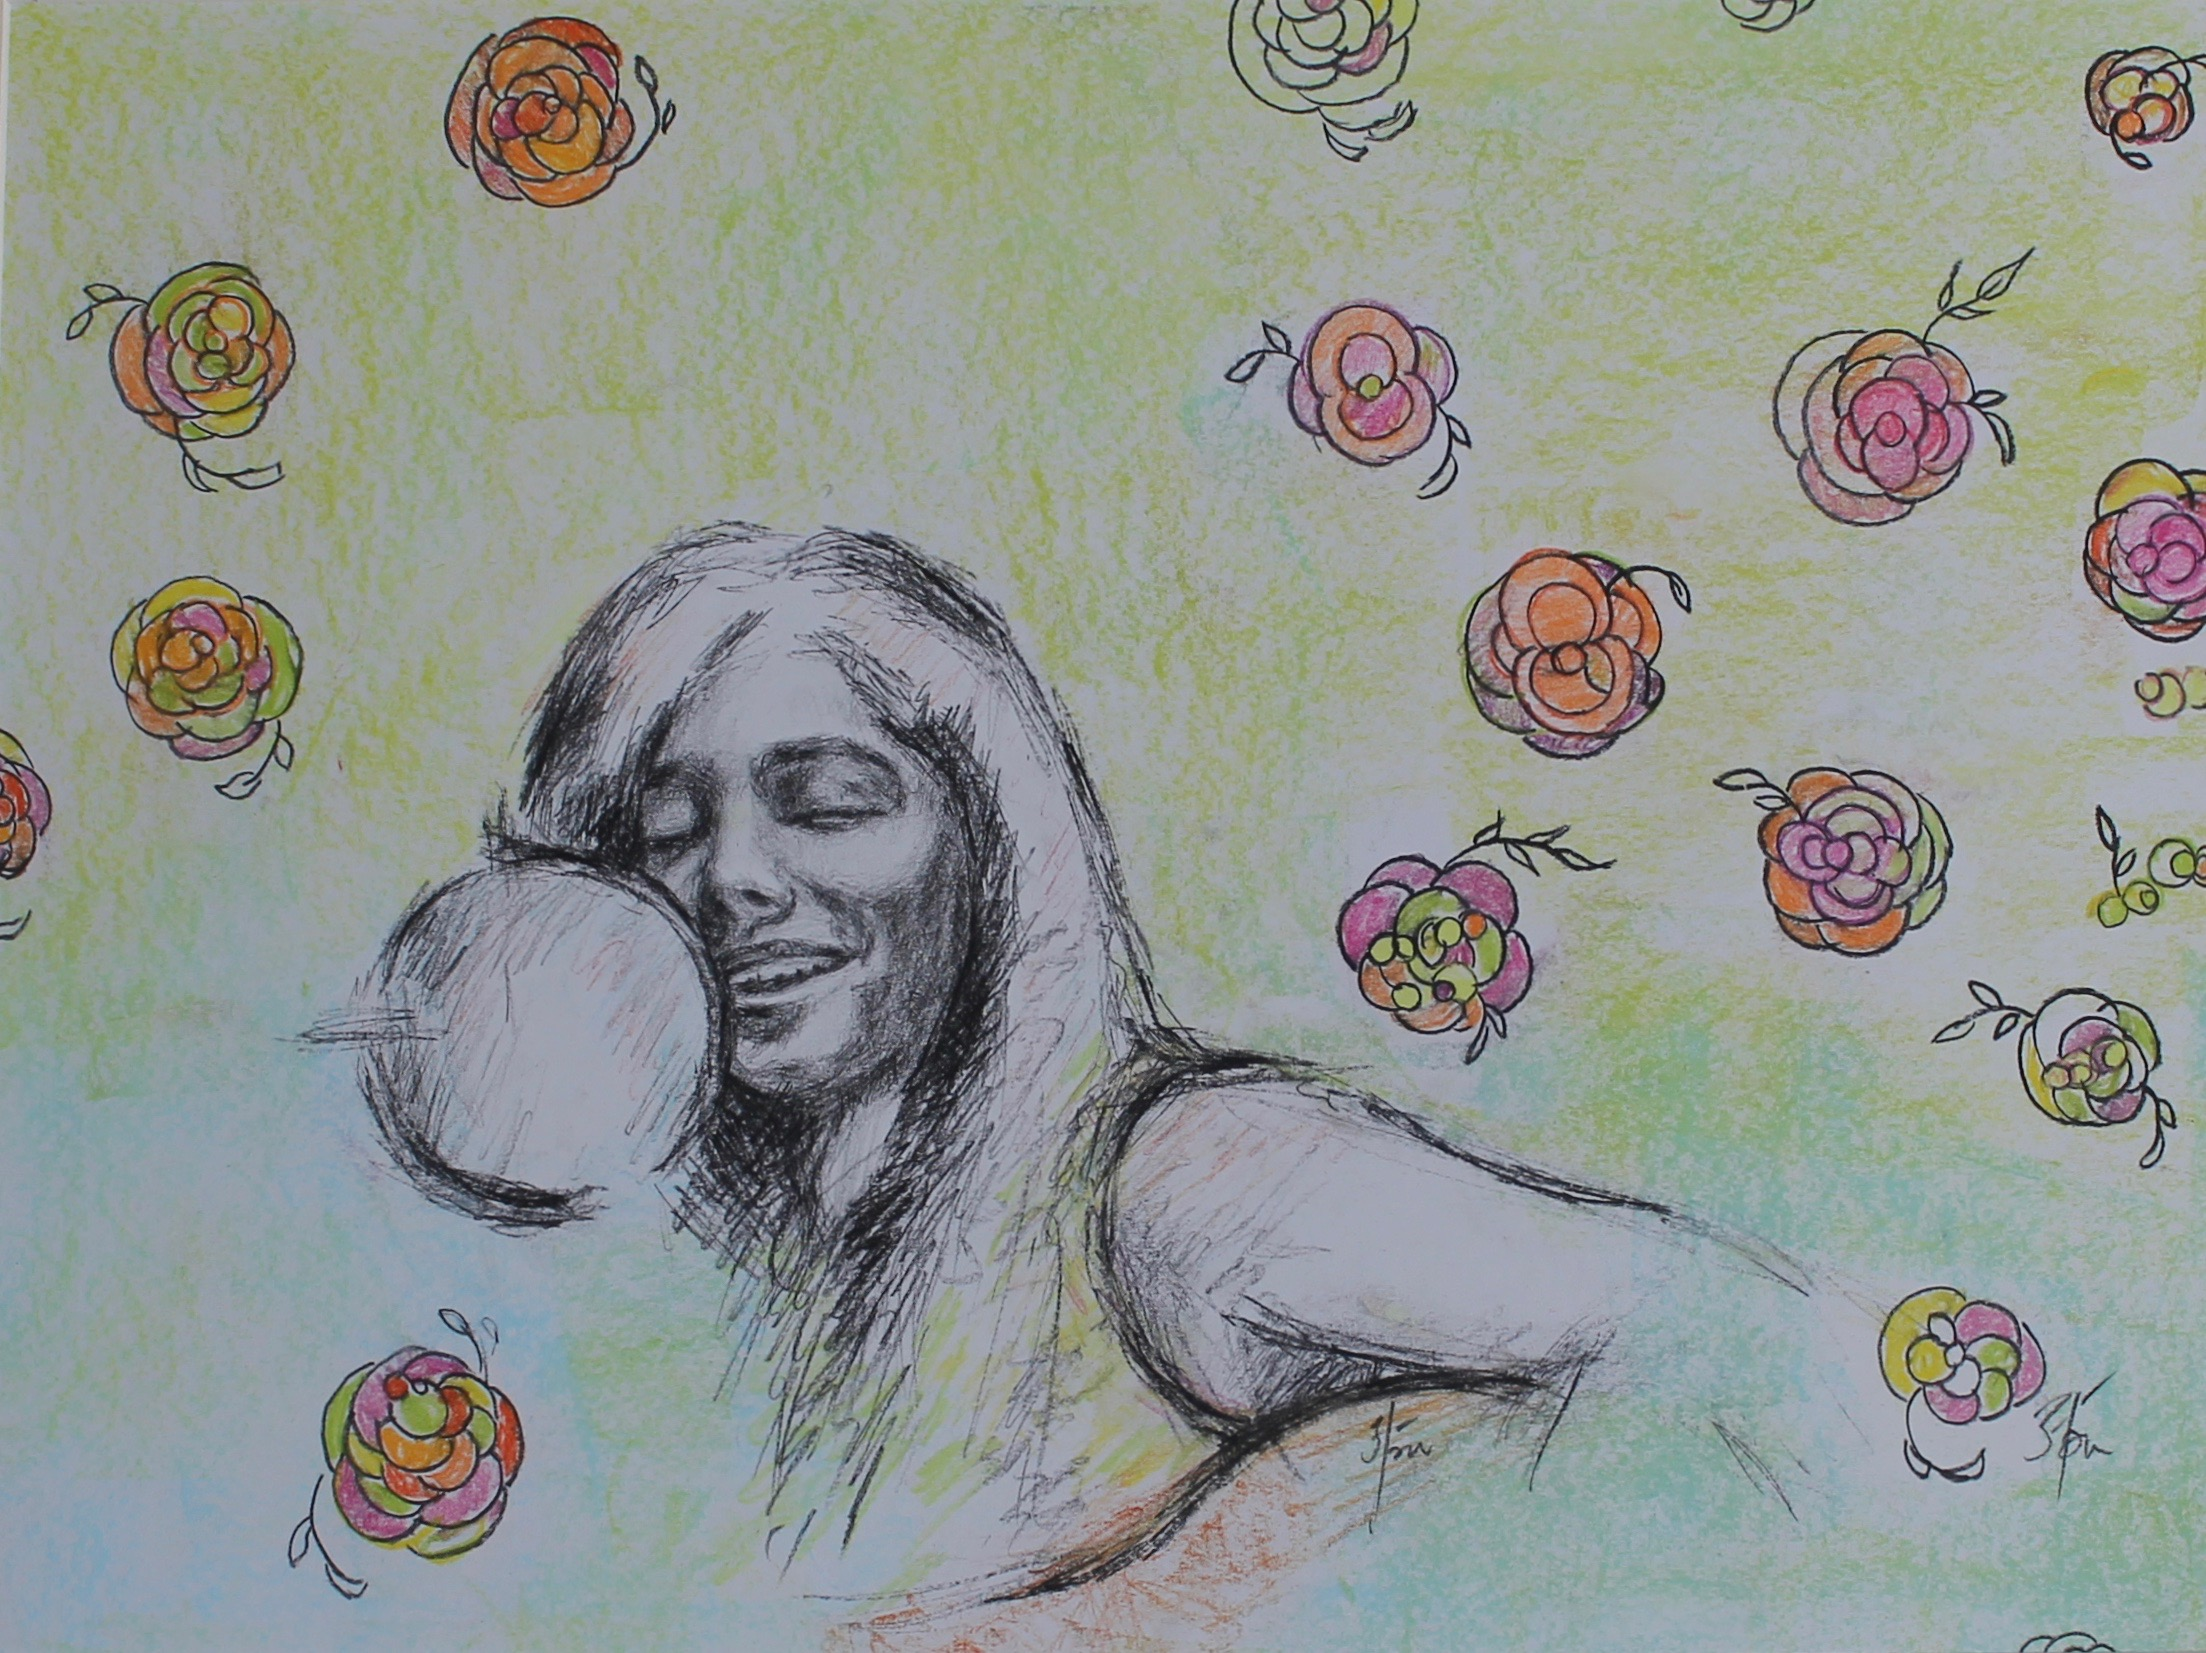 Gopal Aparajita,'Believe', Charcoal and pastel on paper , 14x18in, 2015.jpeg